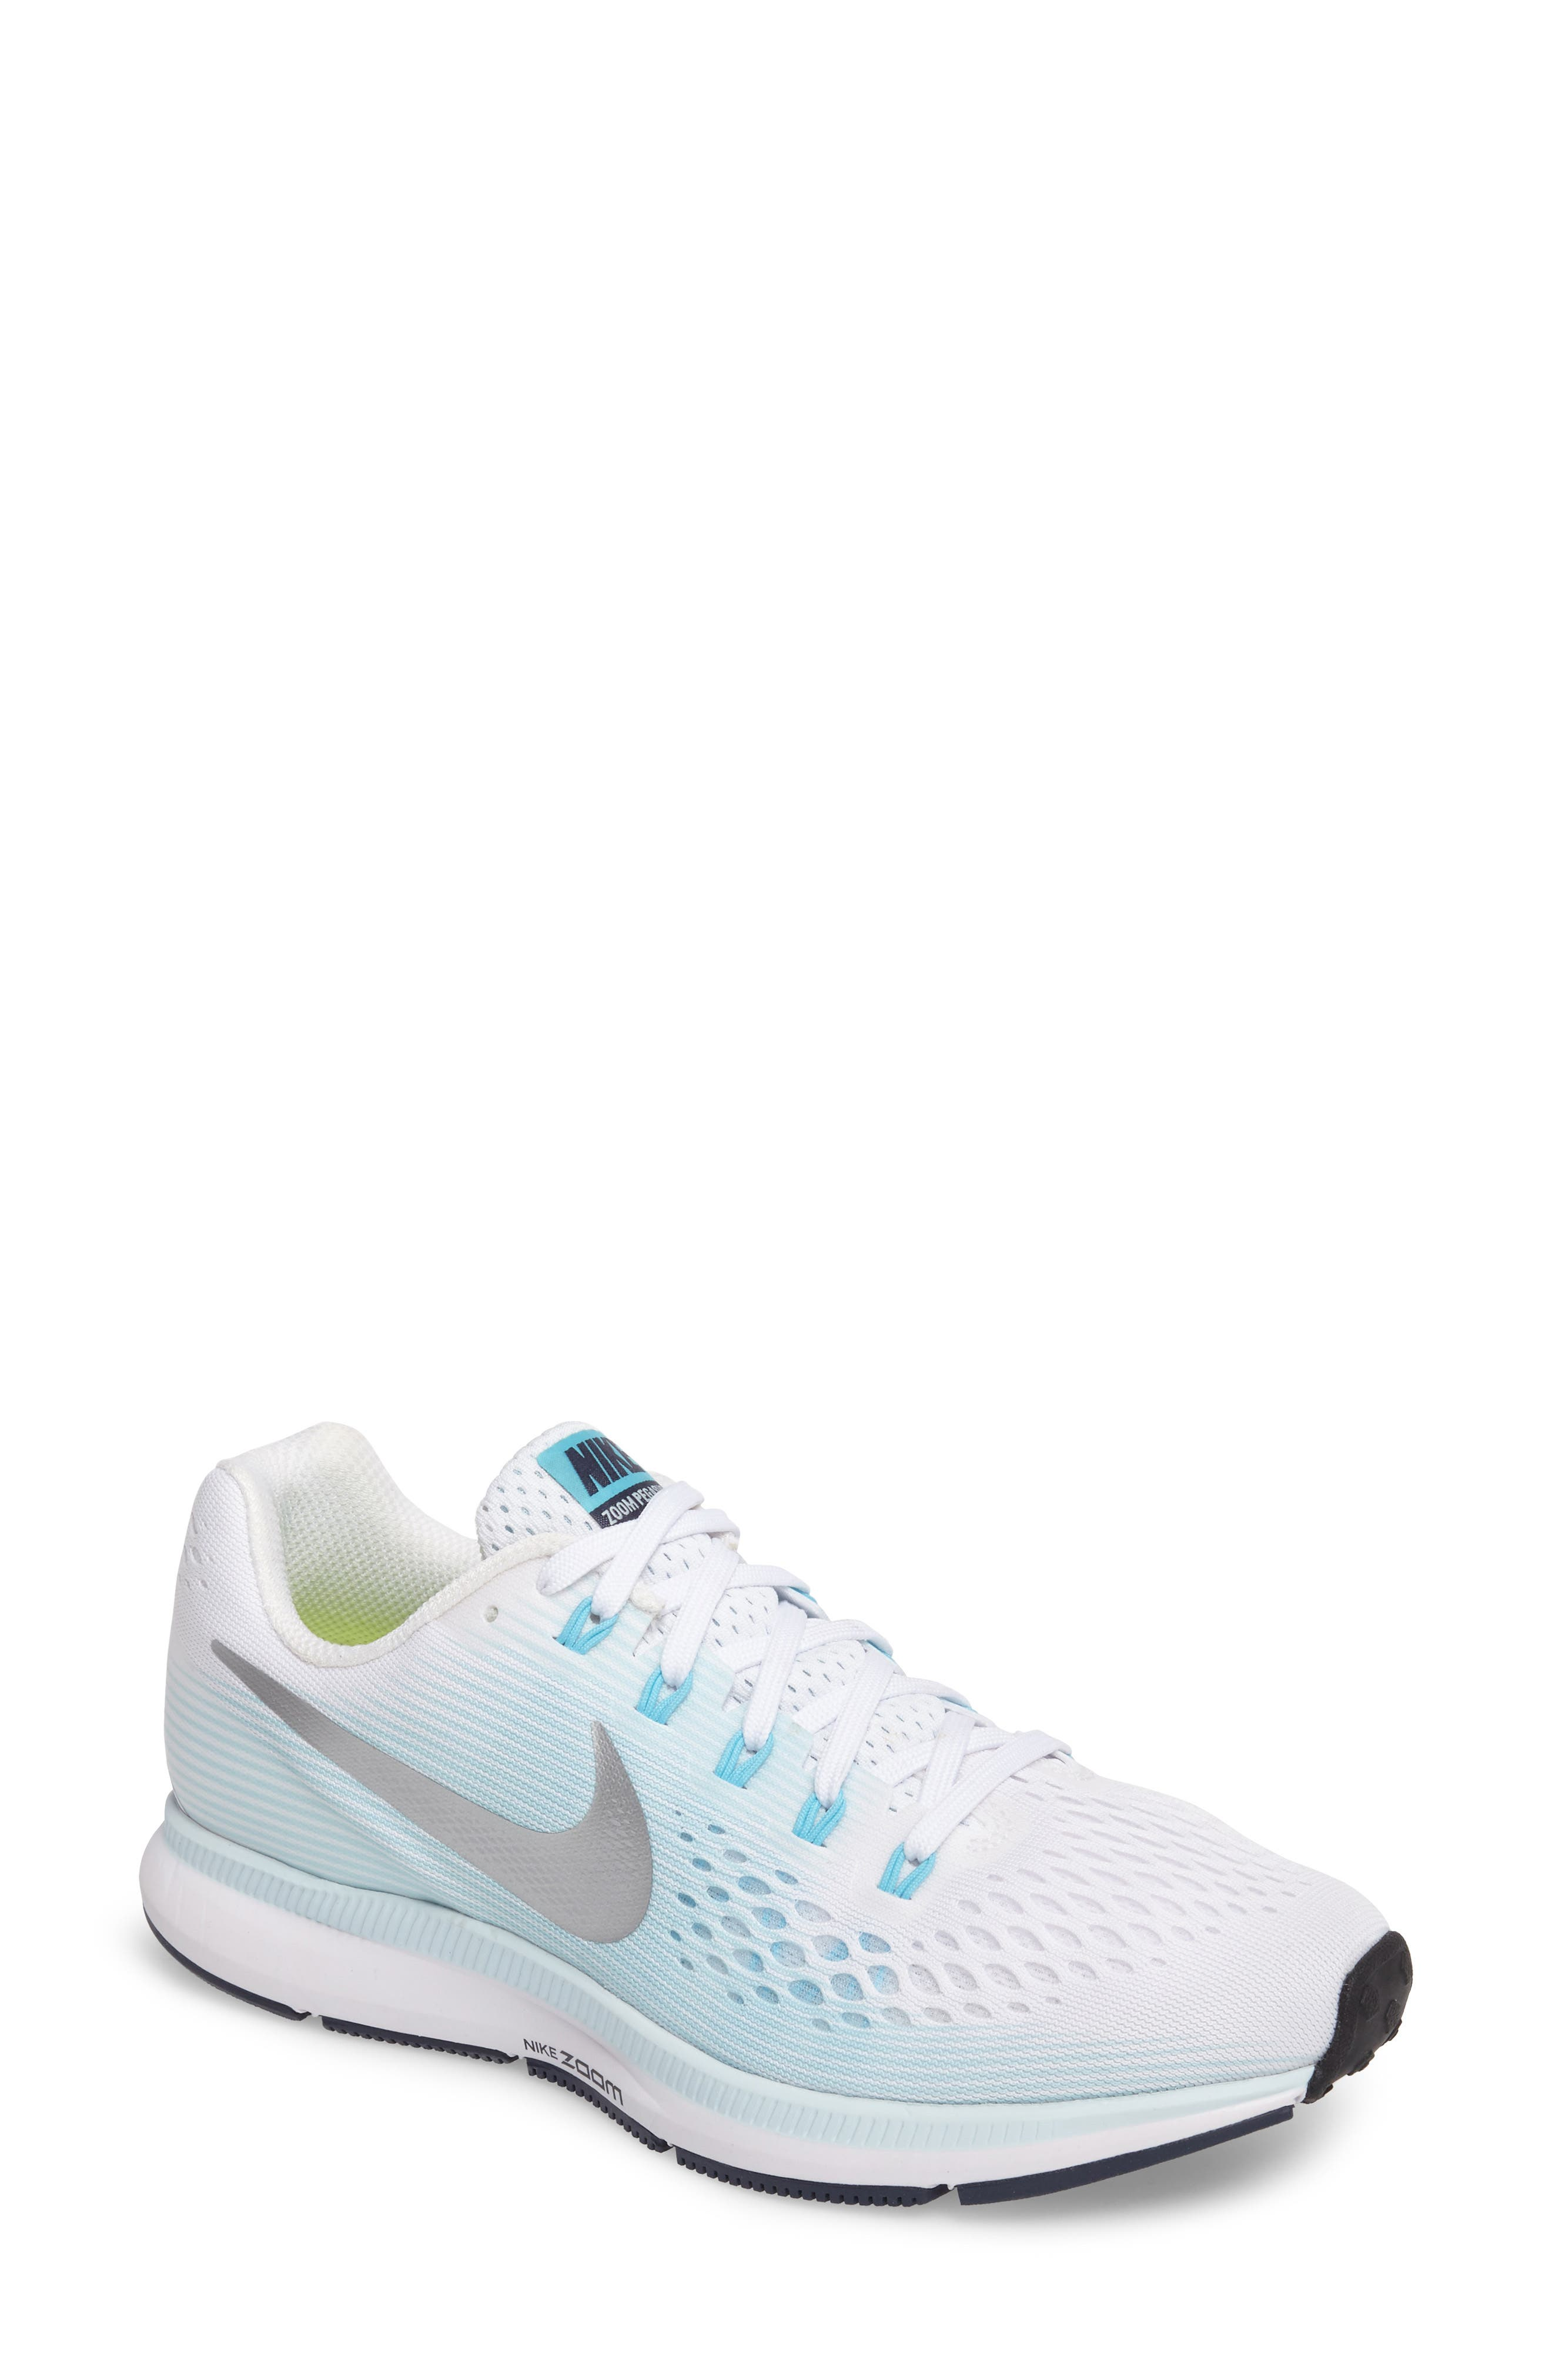 Nike Air Zoom Pegasus 34 Running Shoe (Women)